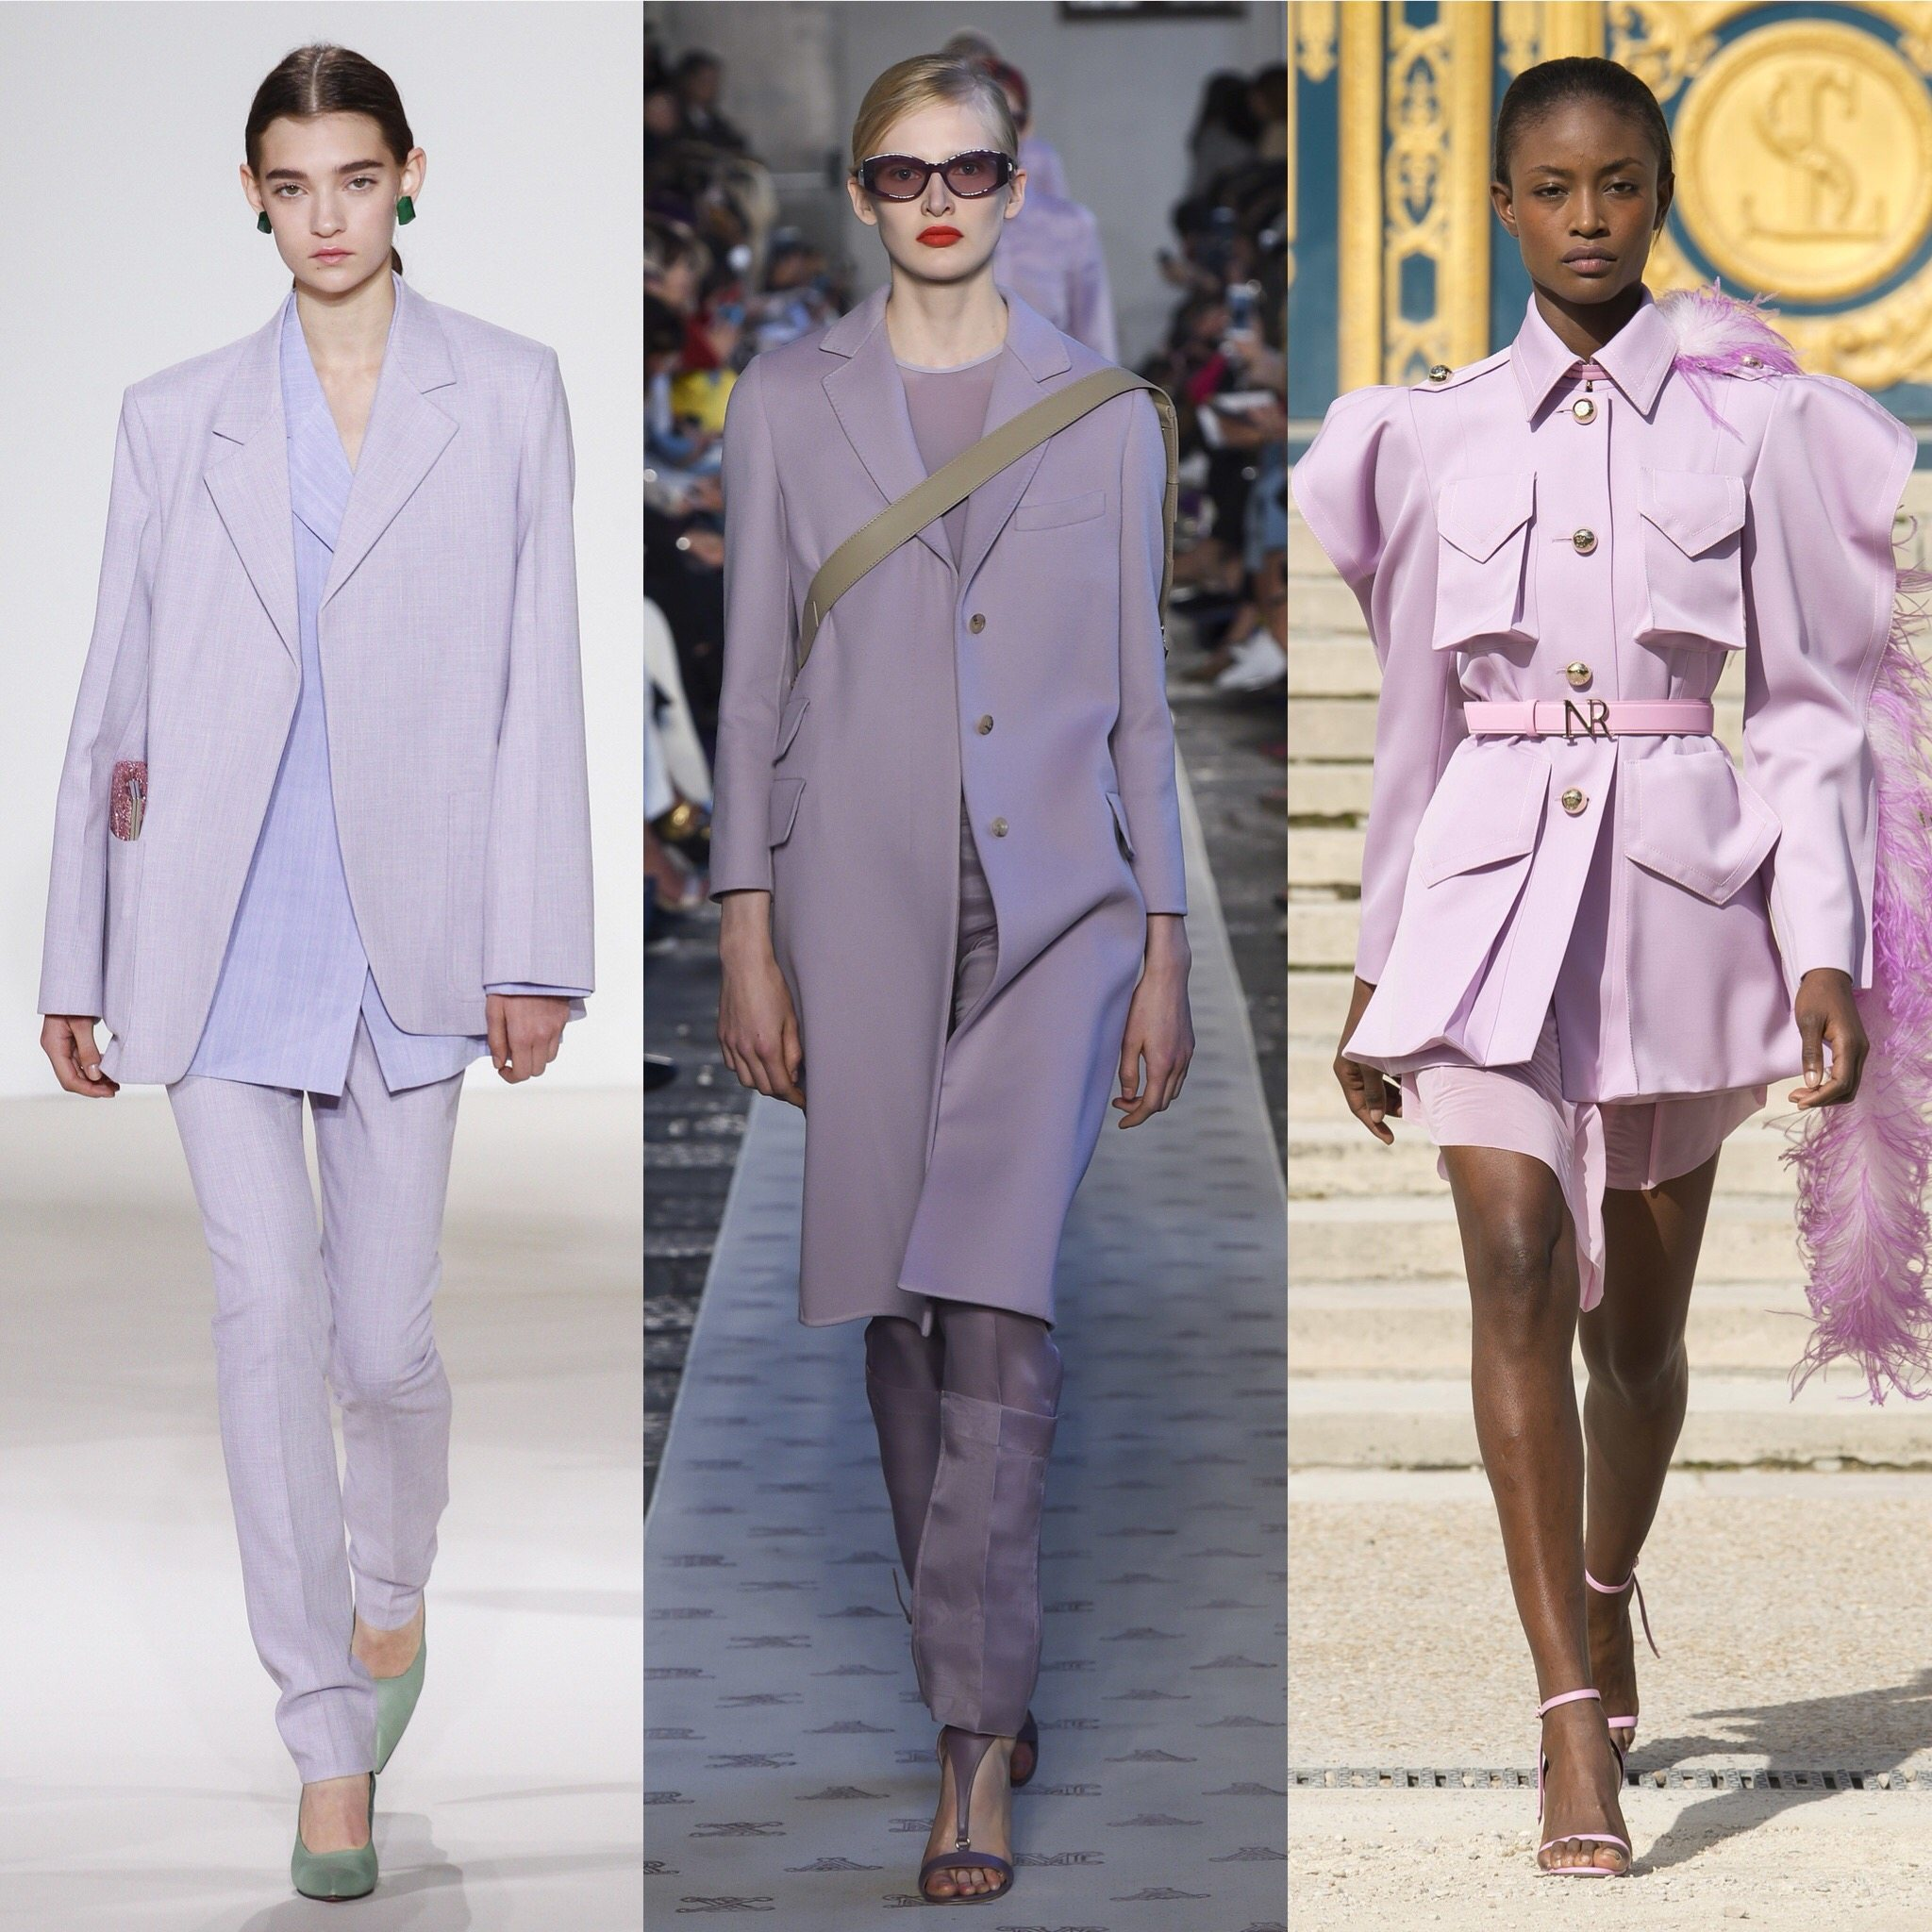 Spring 2018 Trends: Fashion Week coverage - Mauve Monochrome - Victoria Beckham - Max Mara - Nina Ricci. More on Houseofcomil.com. Pictures from Vogue